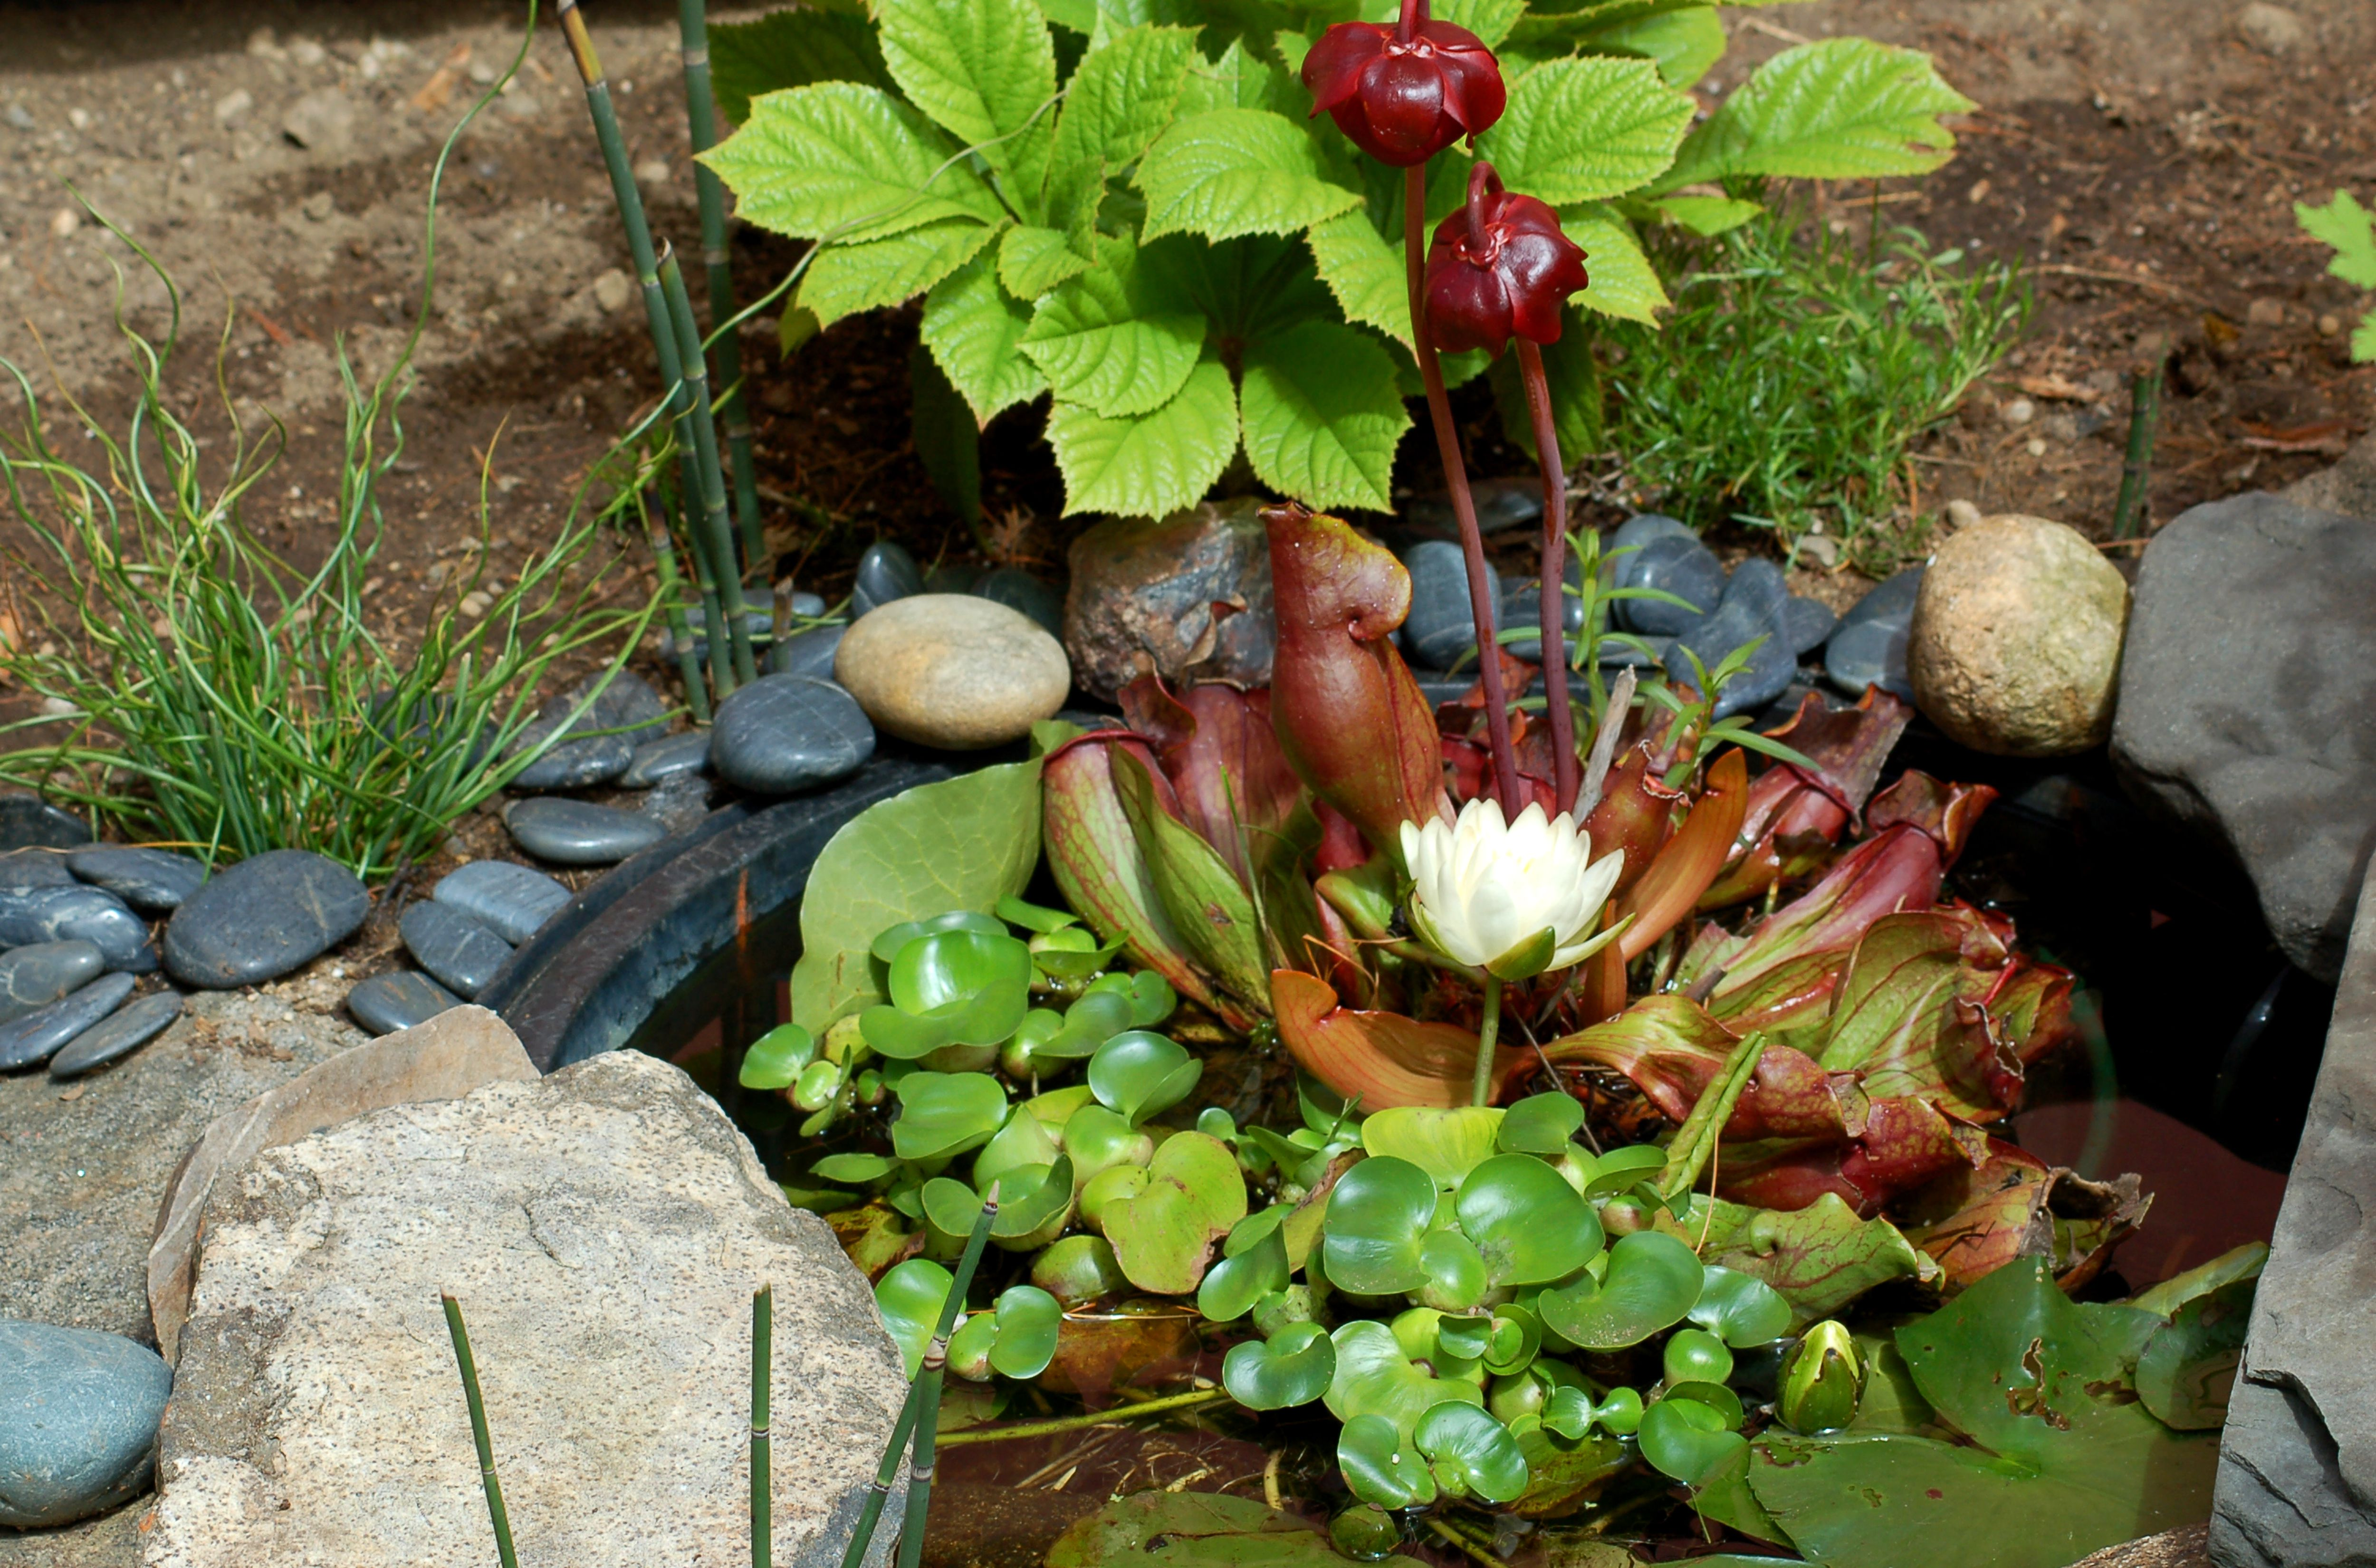 Pond Plants: Best Choices for a Small Area